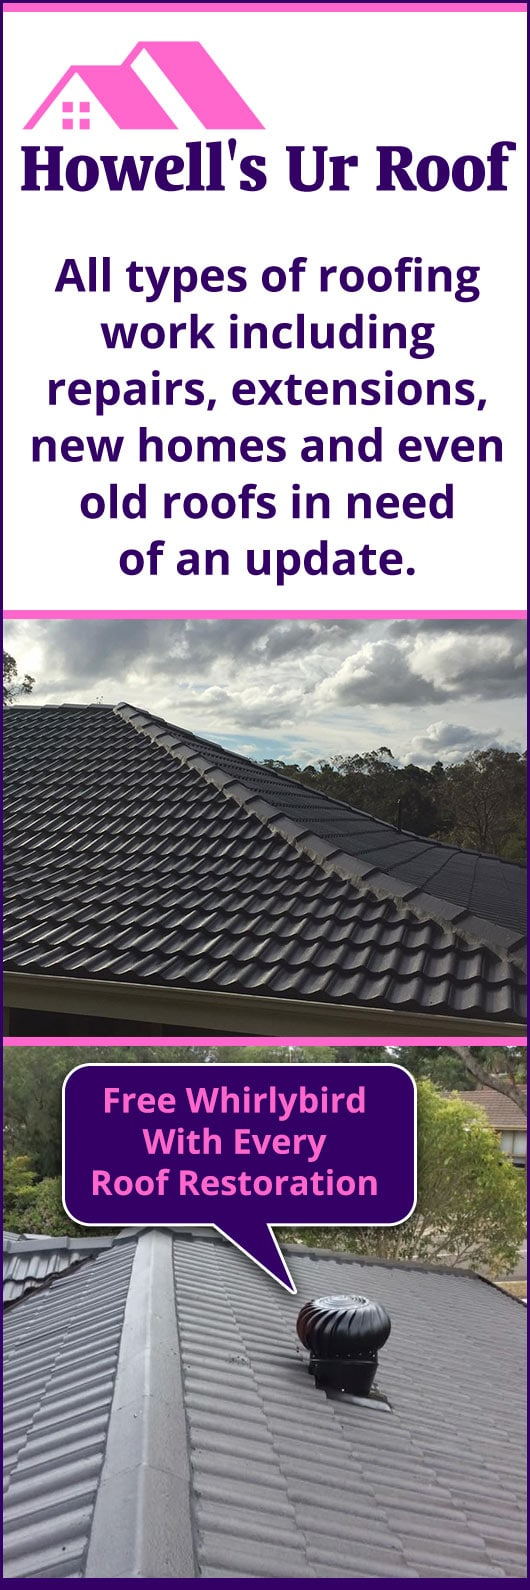 Howell's Ur Roof - Promotion